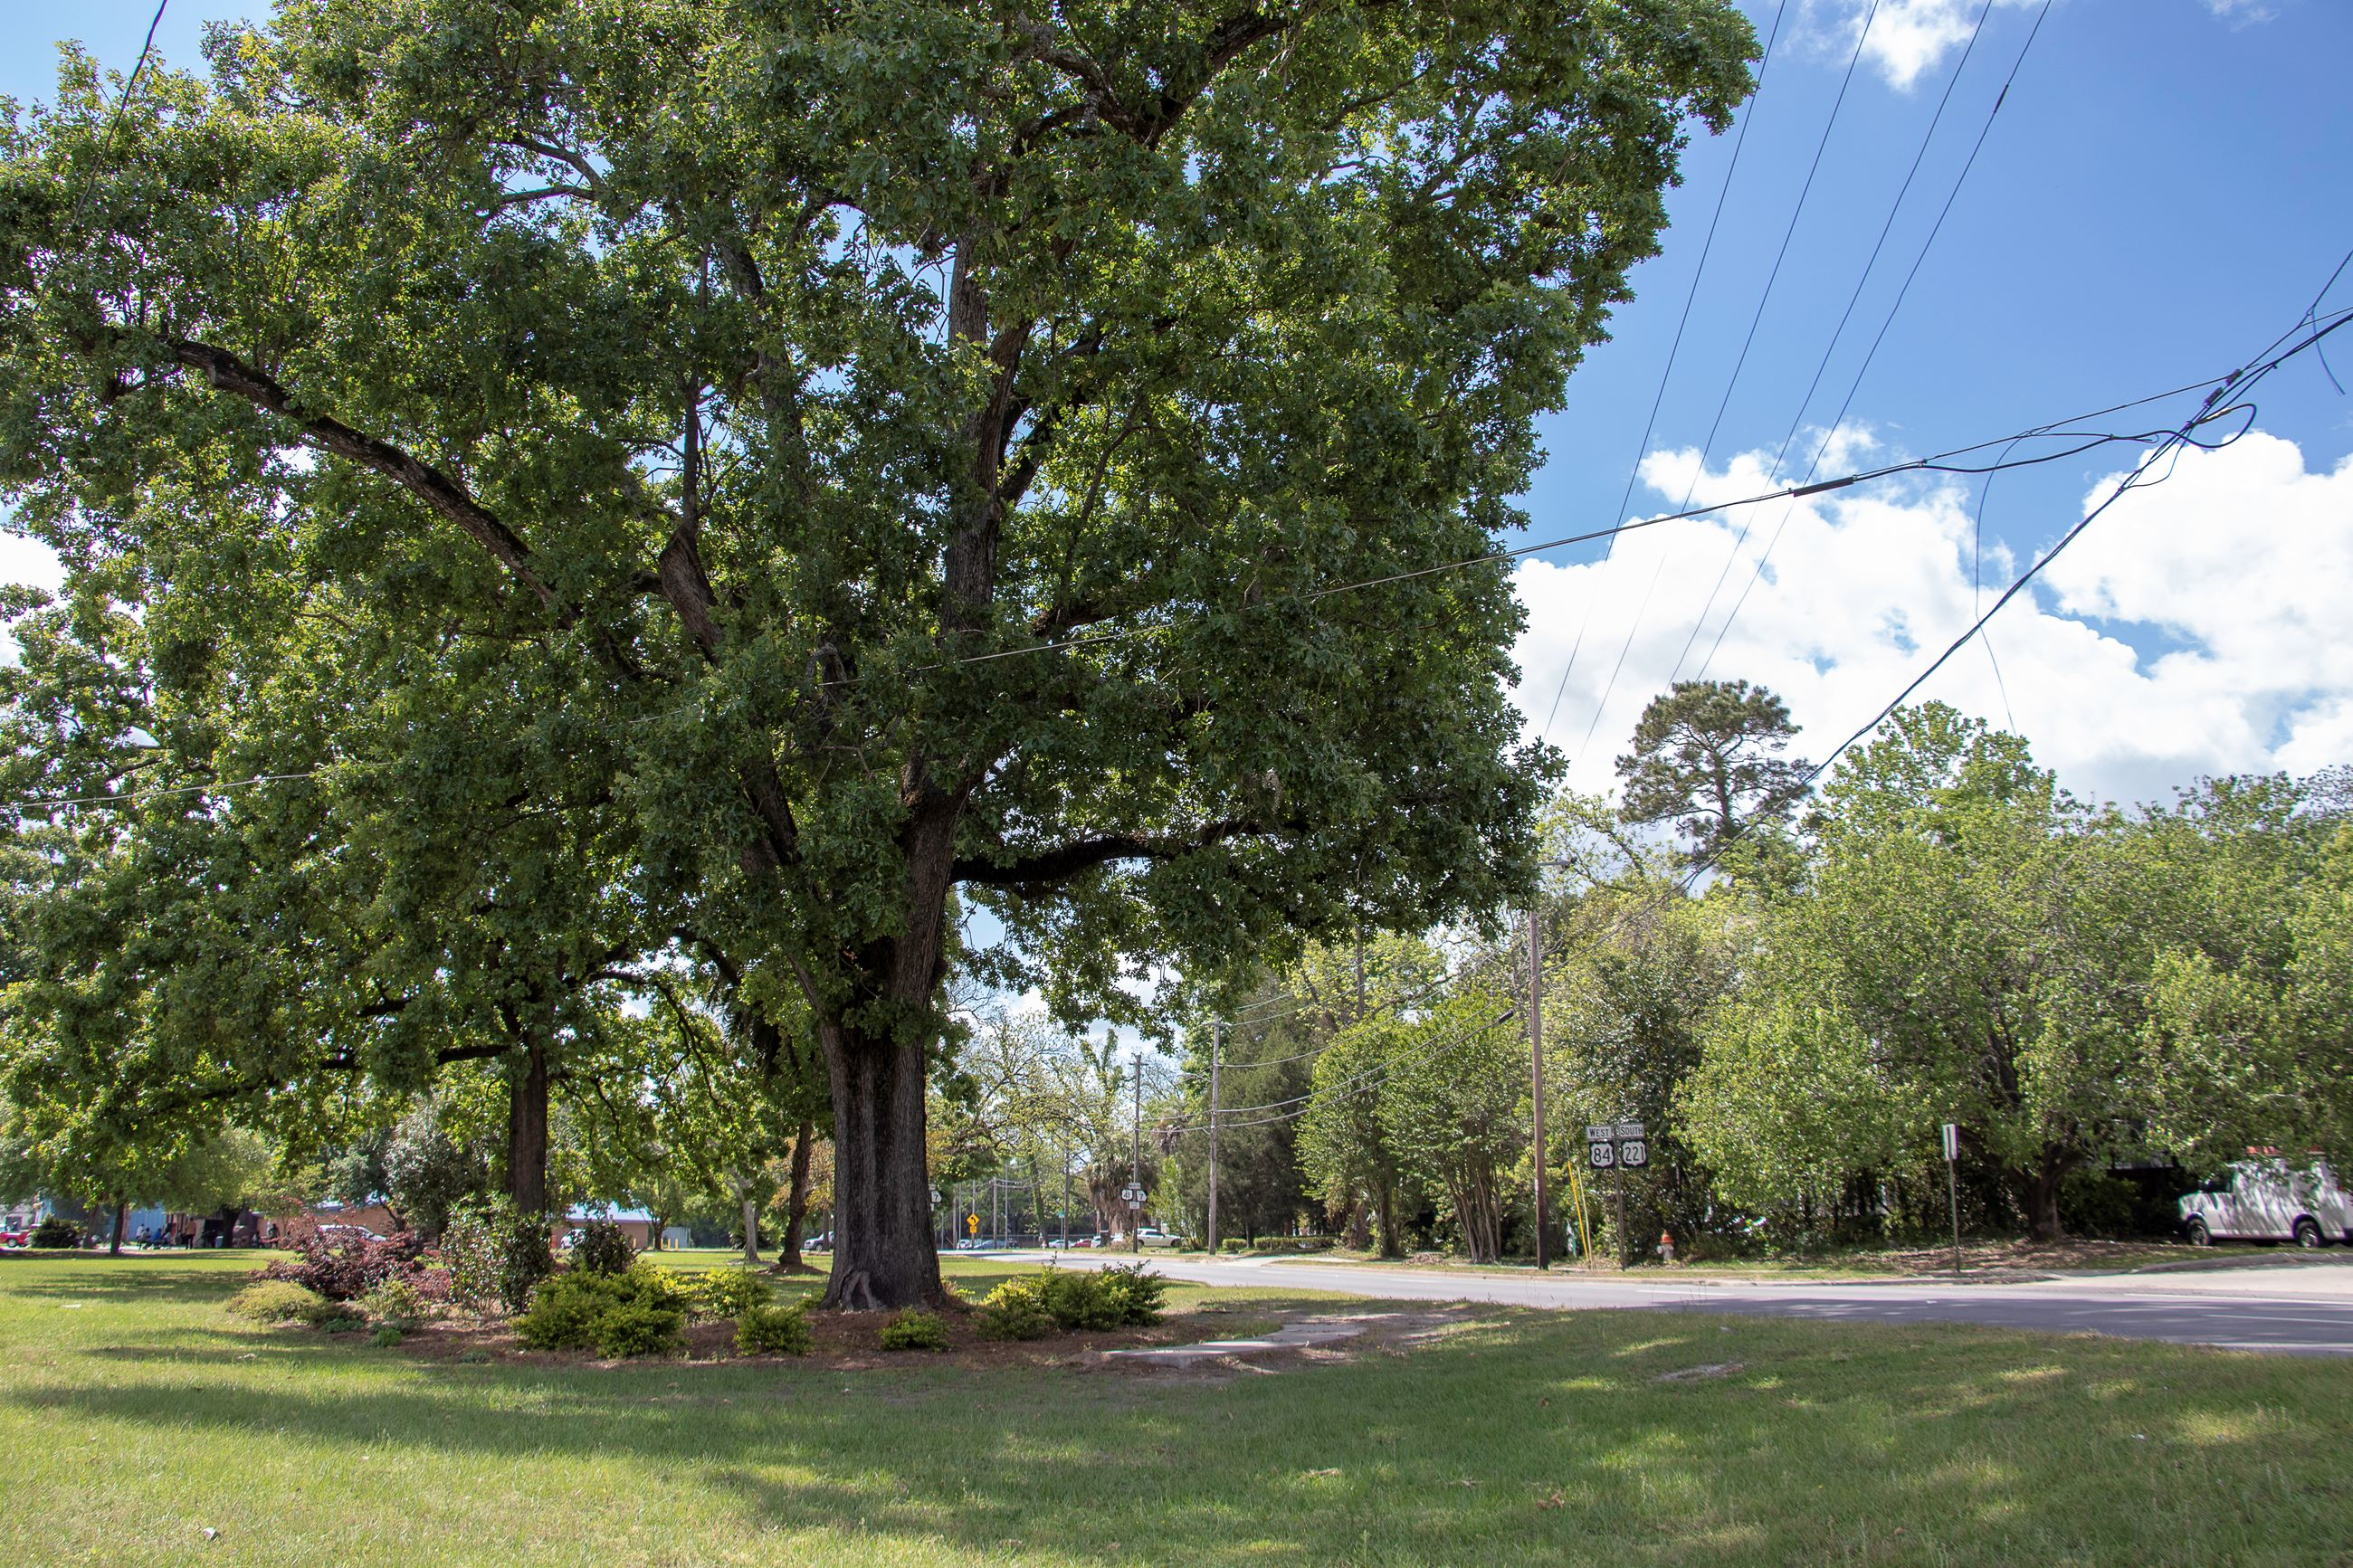 Image of a large tree in a green space near a road.